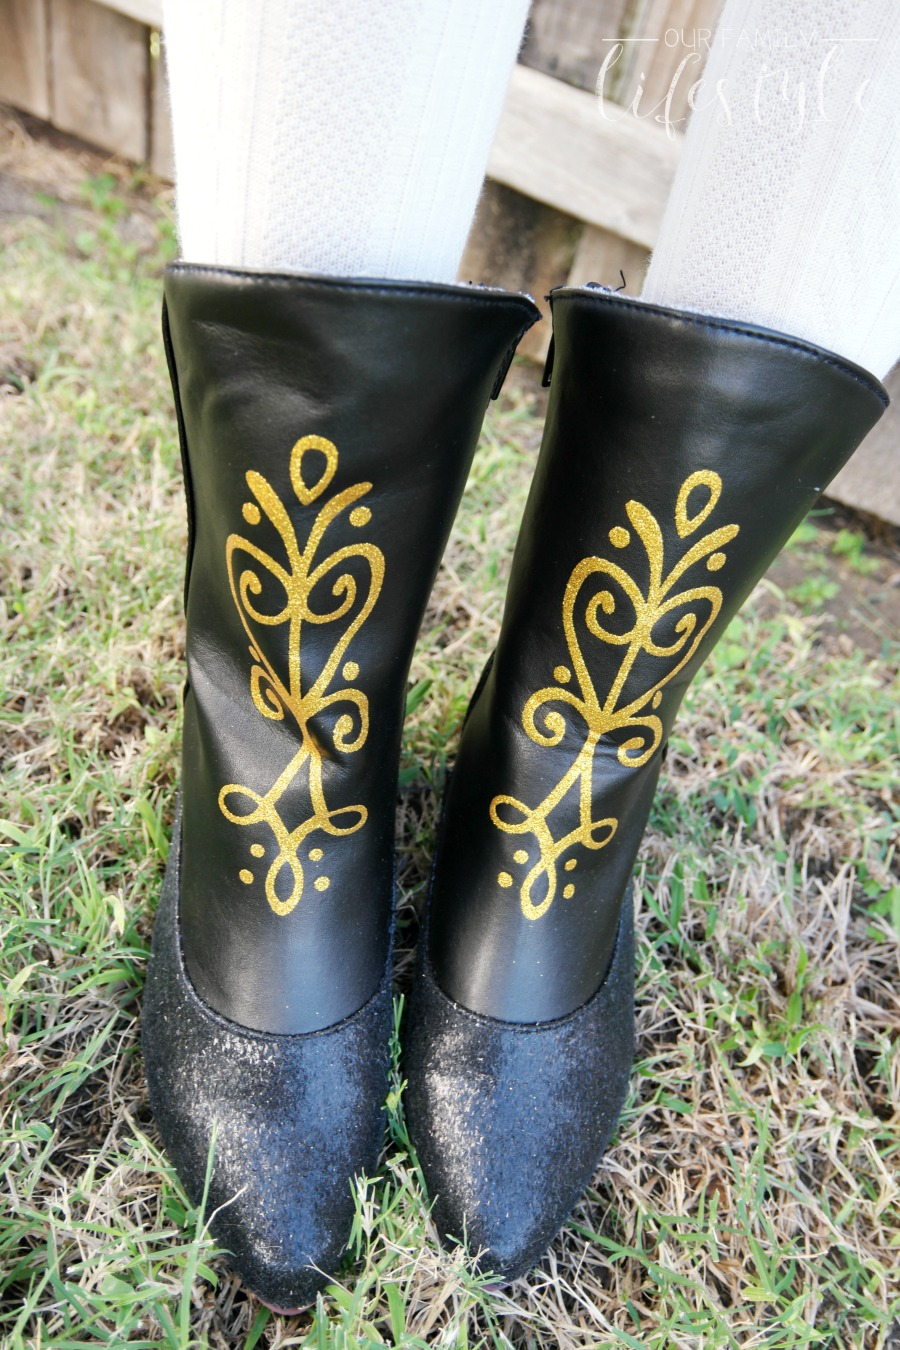 Princess Anna costume boots